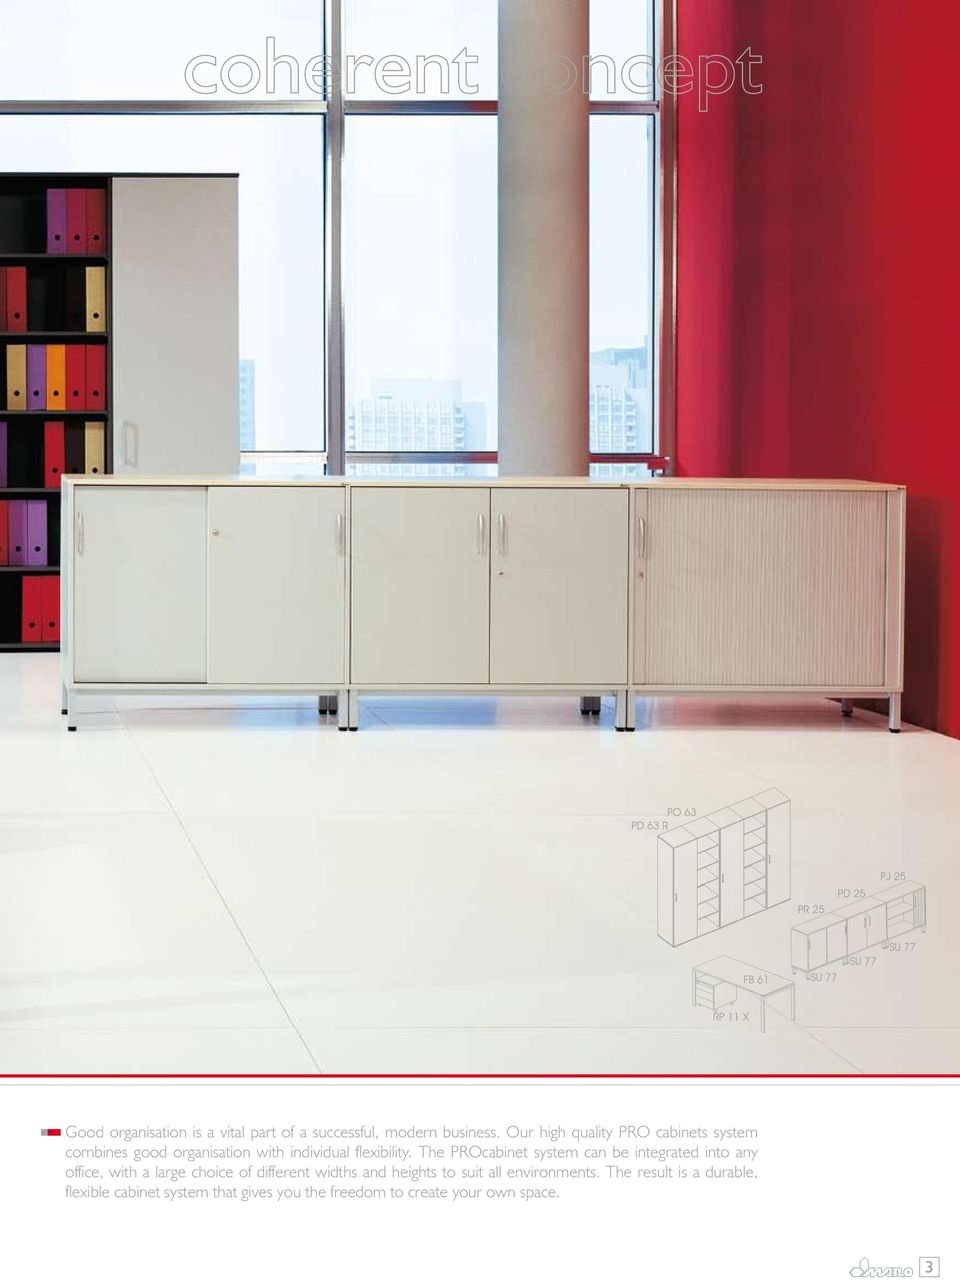 The PROcabinet system can be integrated into any office, with a large choice of different widths